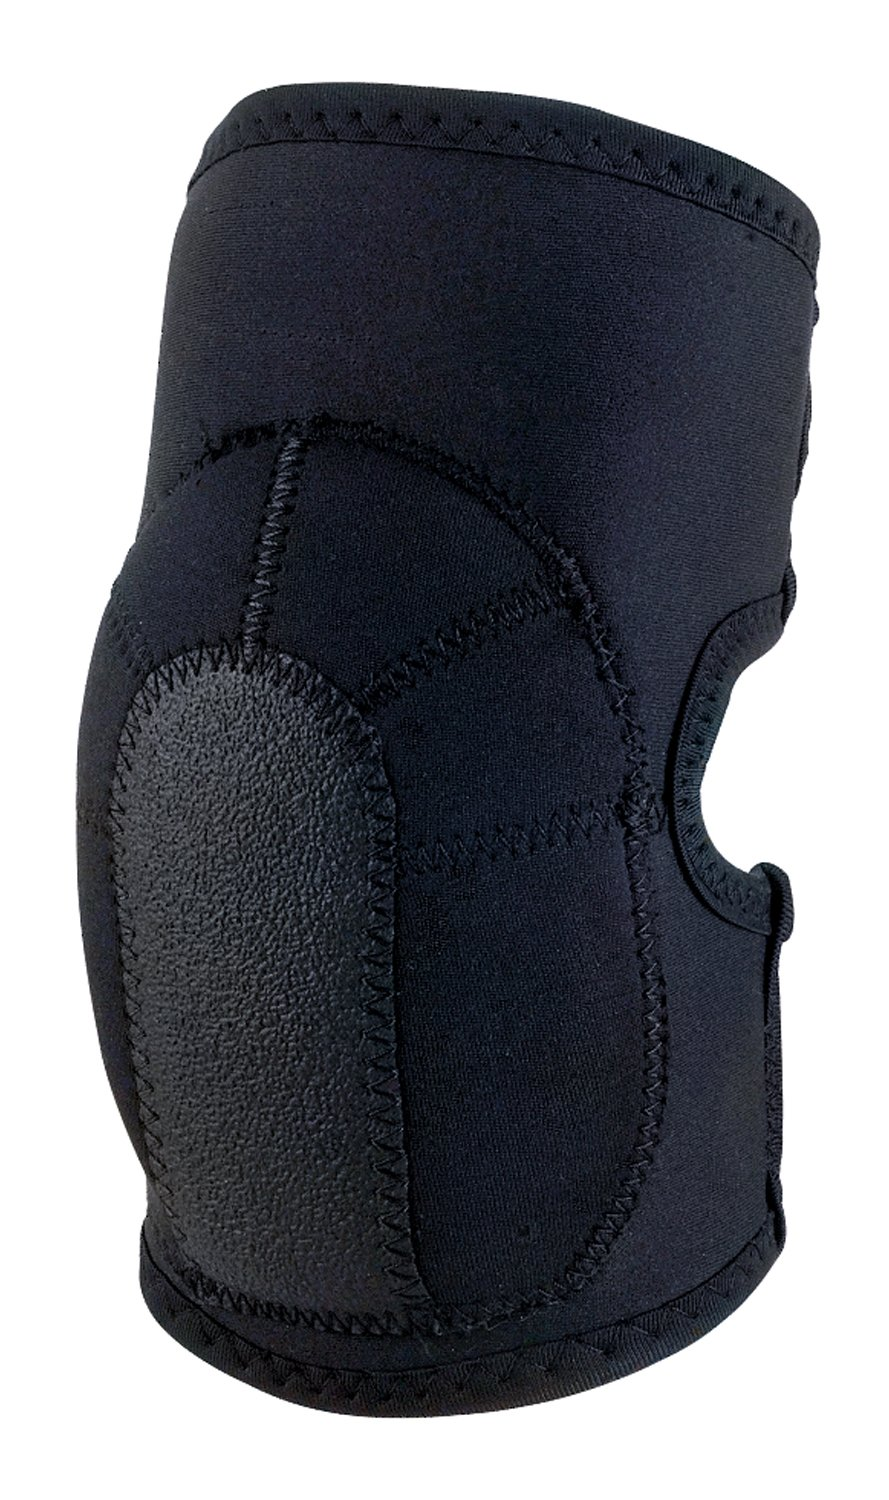 Rothco Neoprene Elbow Pads, Black 613902356603